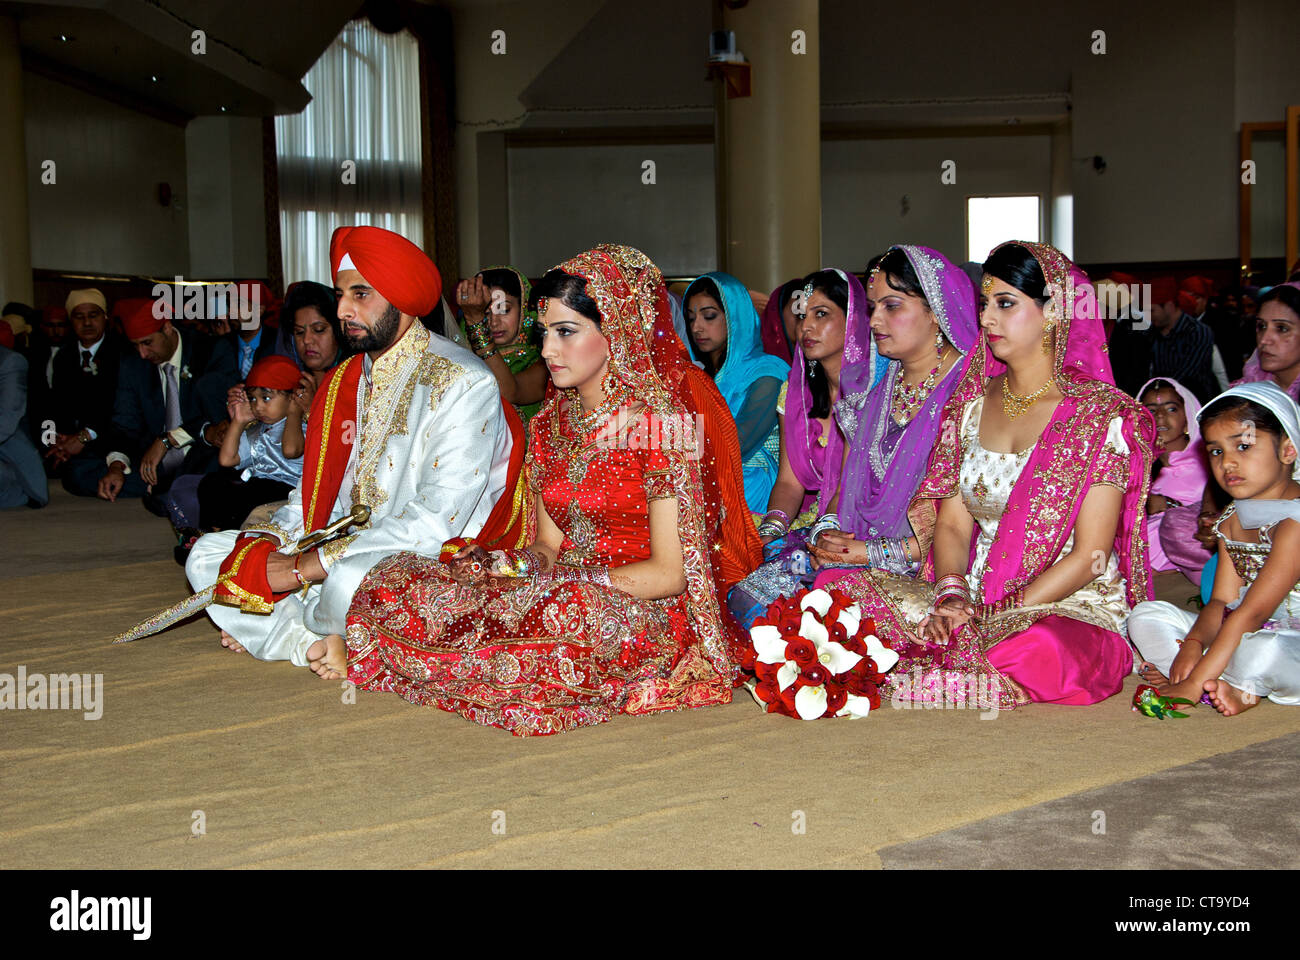 Traditional East Indian Wedding Groom Bright Red Turban